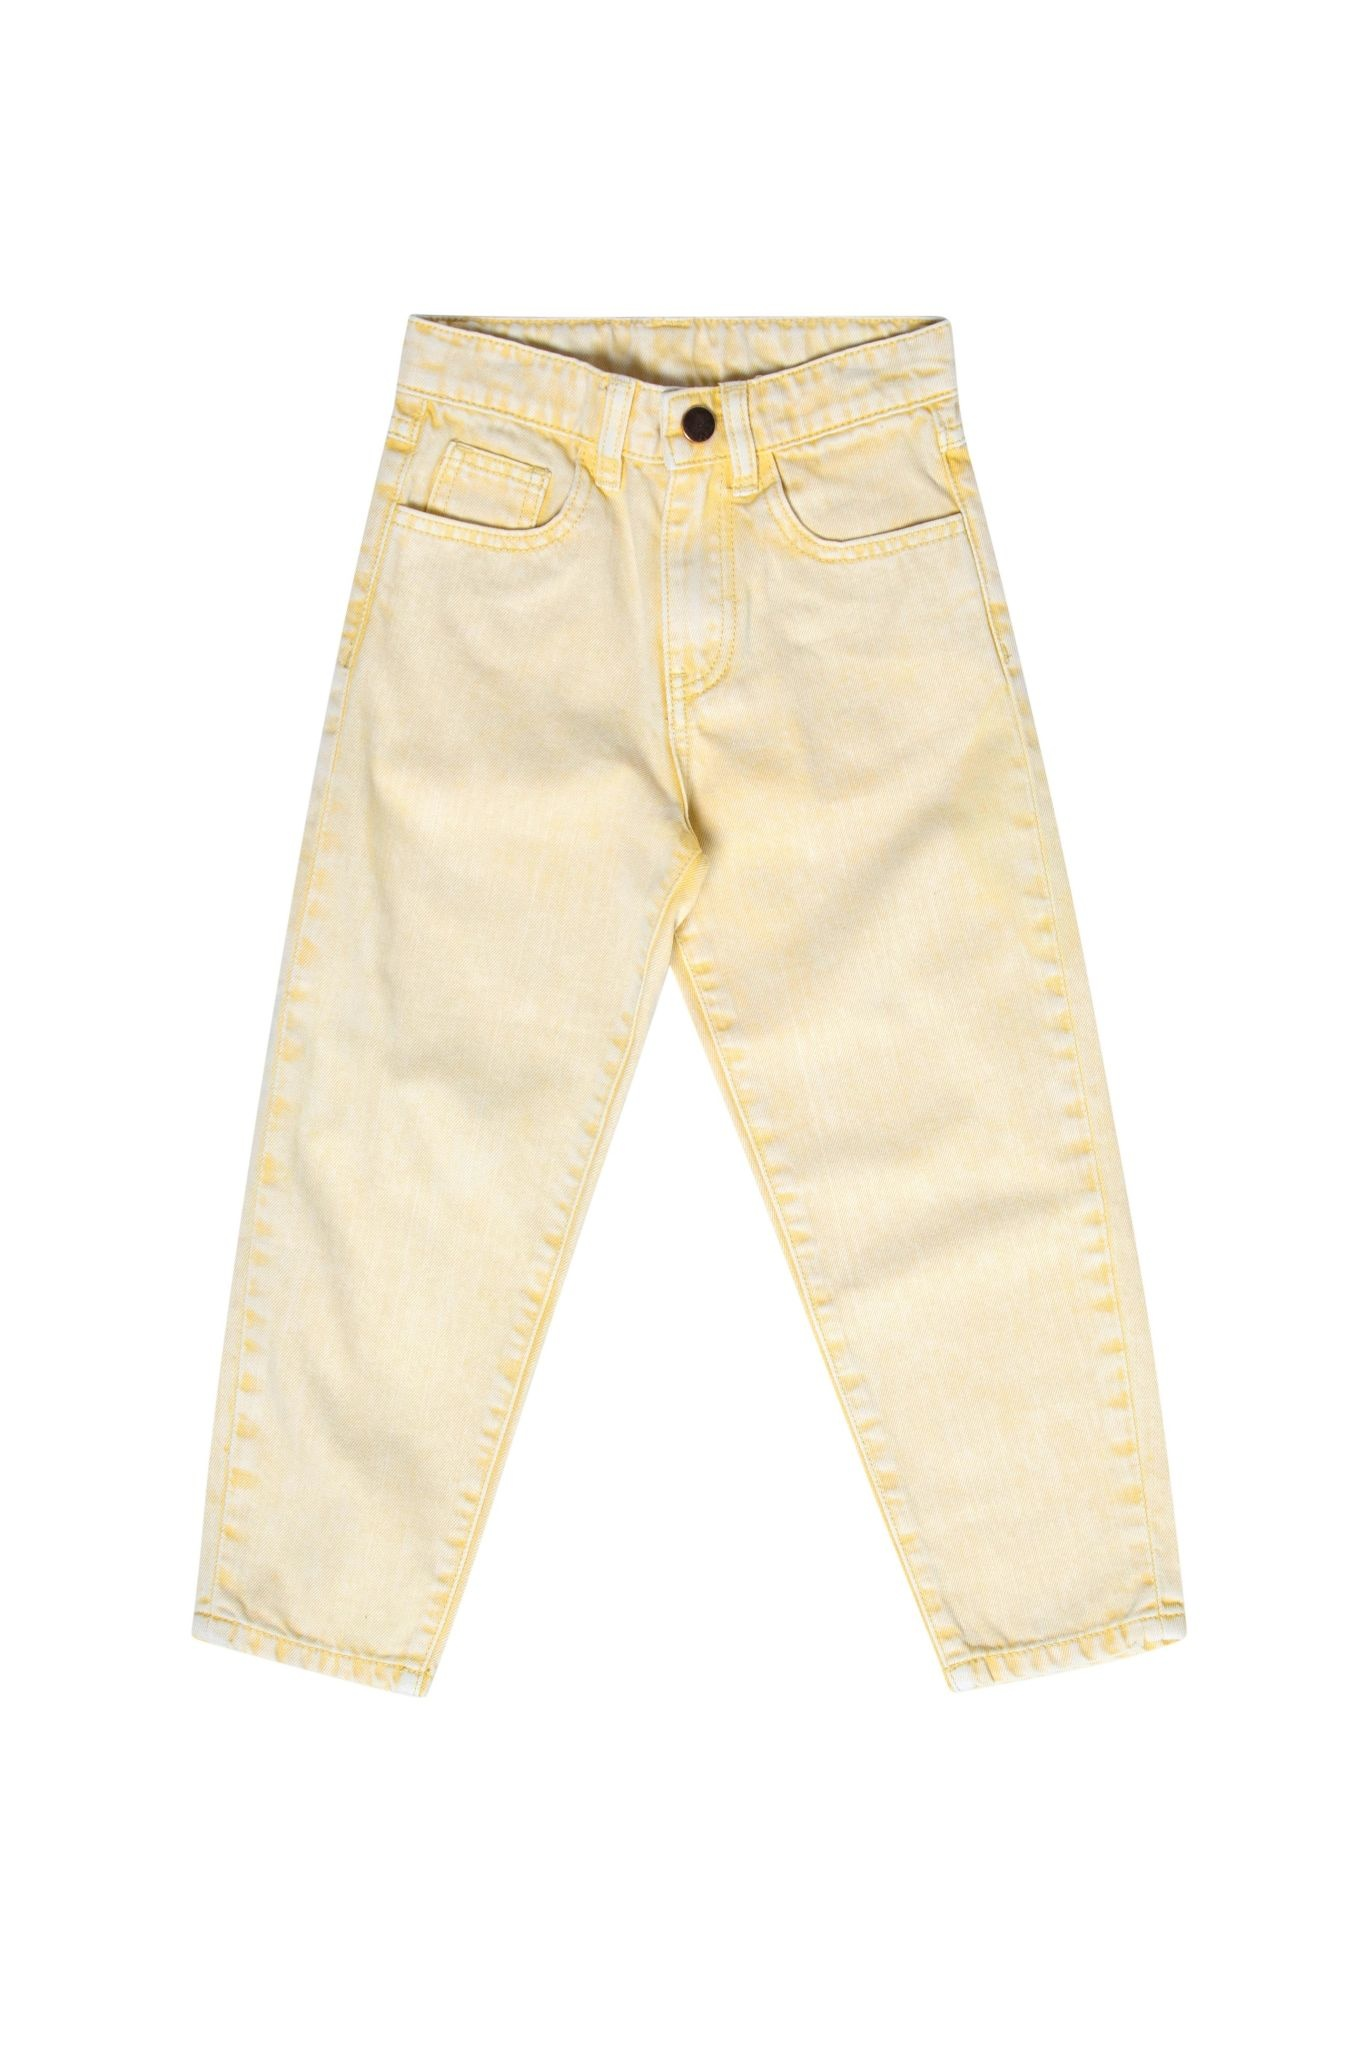 Maed For mini Maed for mini - Blonde bull jeans